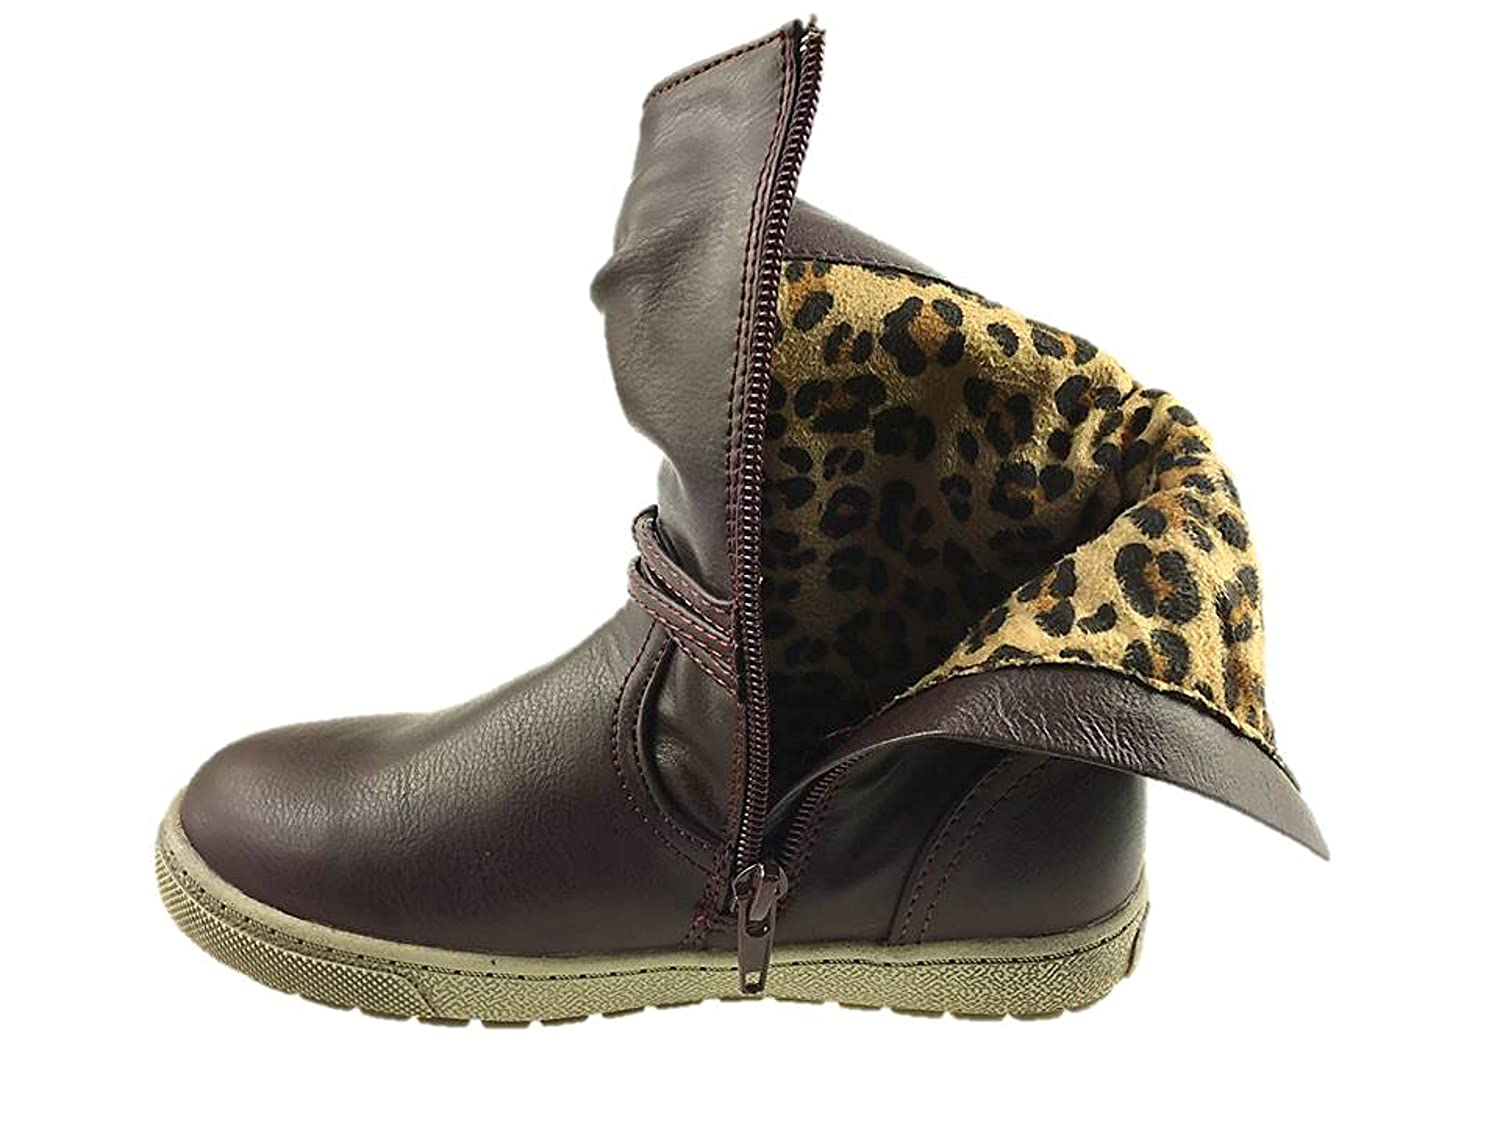 GIRLS INFANTS FAUX LEATHER FLAT ANKLE BOOTS INSIDE ZIP BURGUNDY SIZE UK  6-13 NEW: Amazon.co.uk: Shoes & Bags